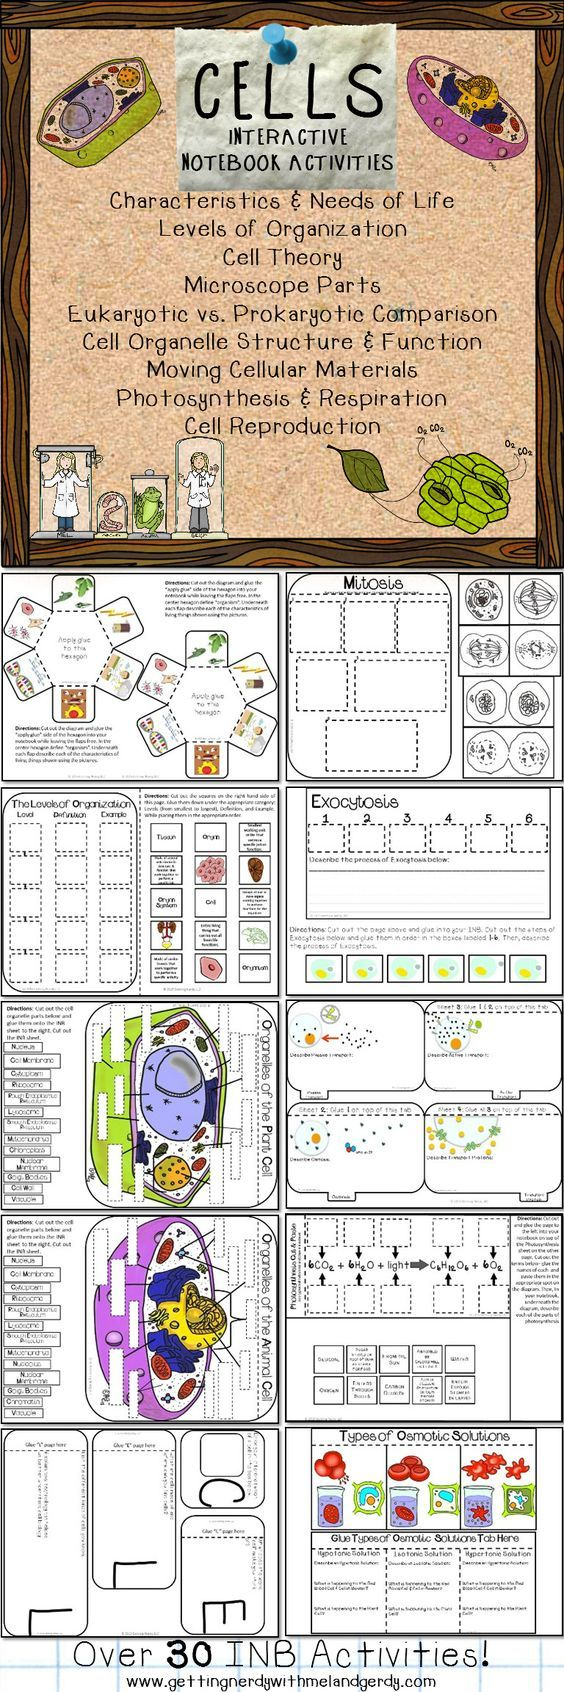 Over 30 interactive science notebook activities for cells! Characteristics and needs of life, levels of organization, cell theory, microscope parts, Robert Hooke, eukaryotic and prokaryotic cell comparison, cell organelle structure and function, osmotic solutions, cellular respiration and photosynthesis, mitosis, active and passive transport, and MORE!